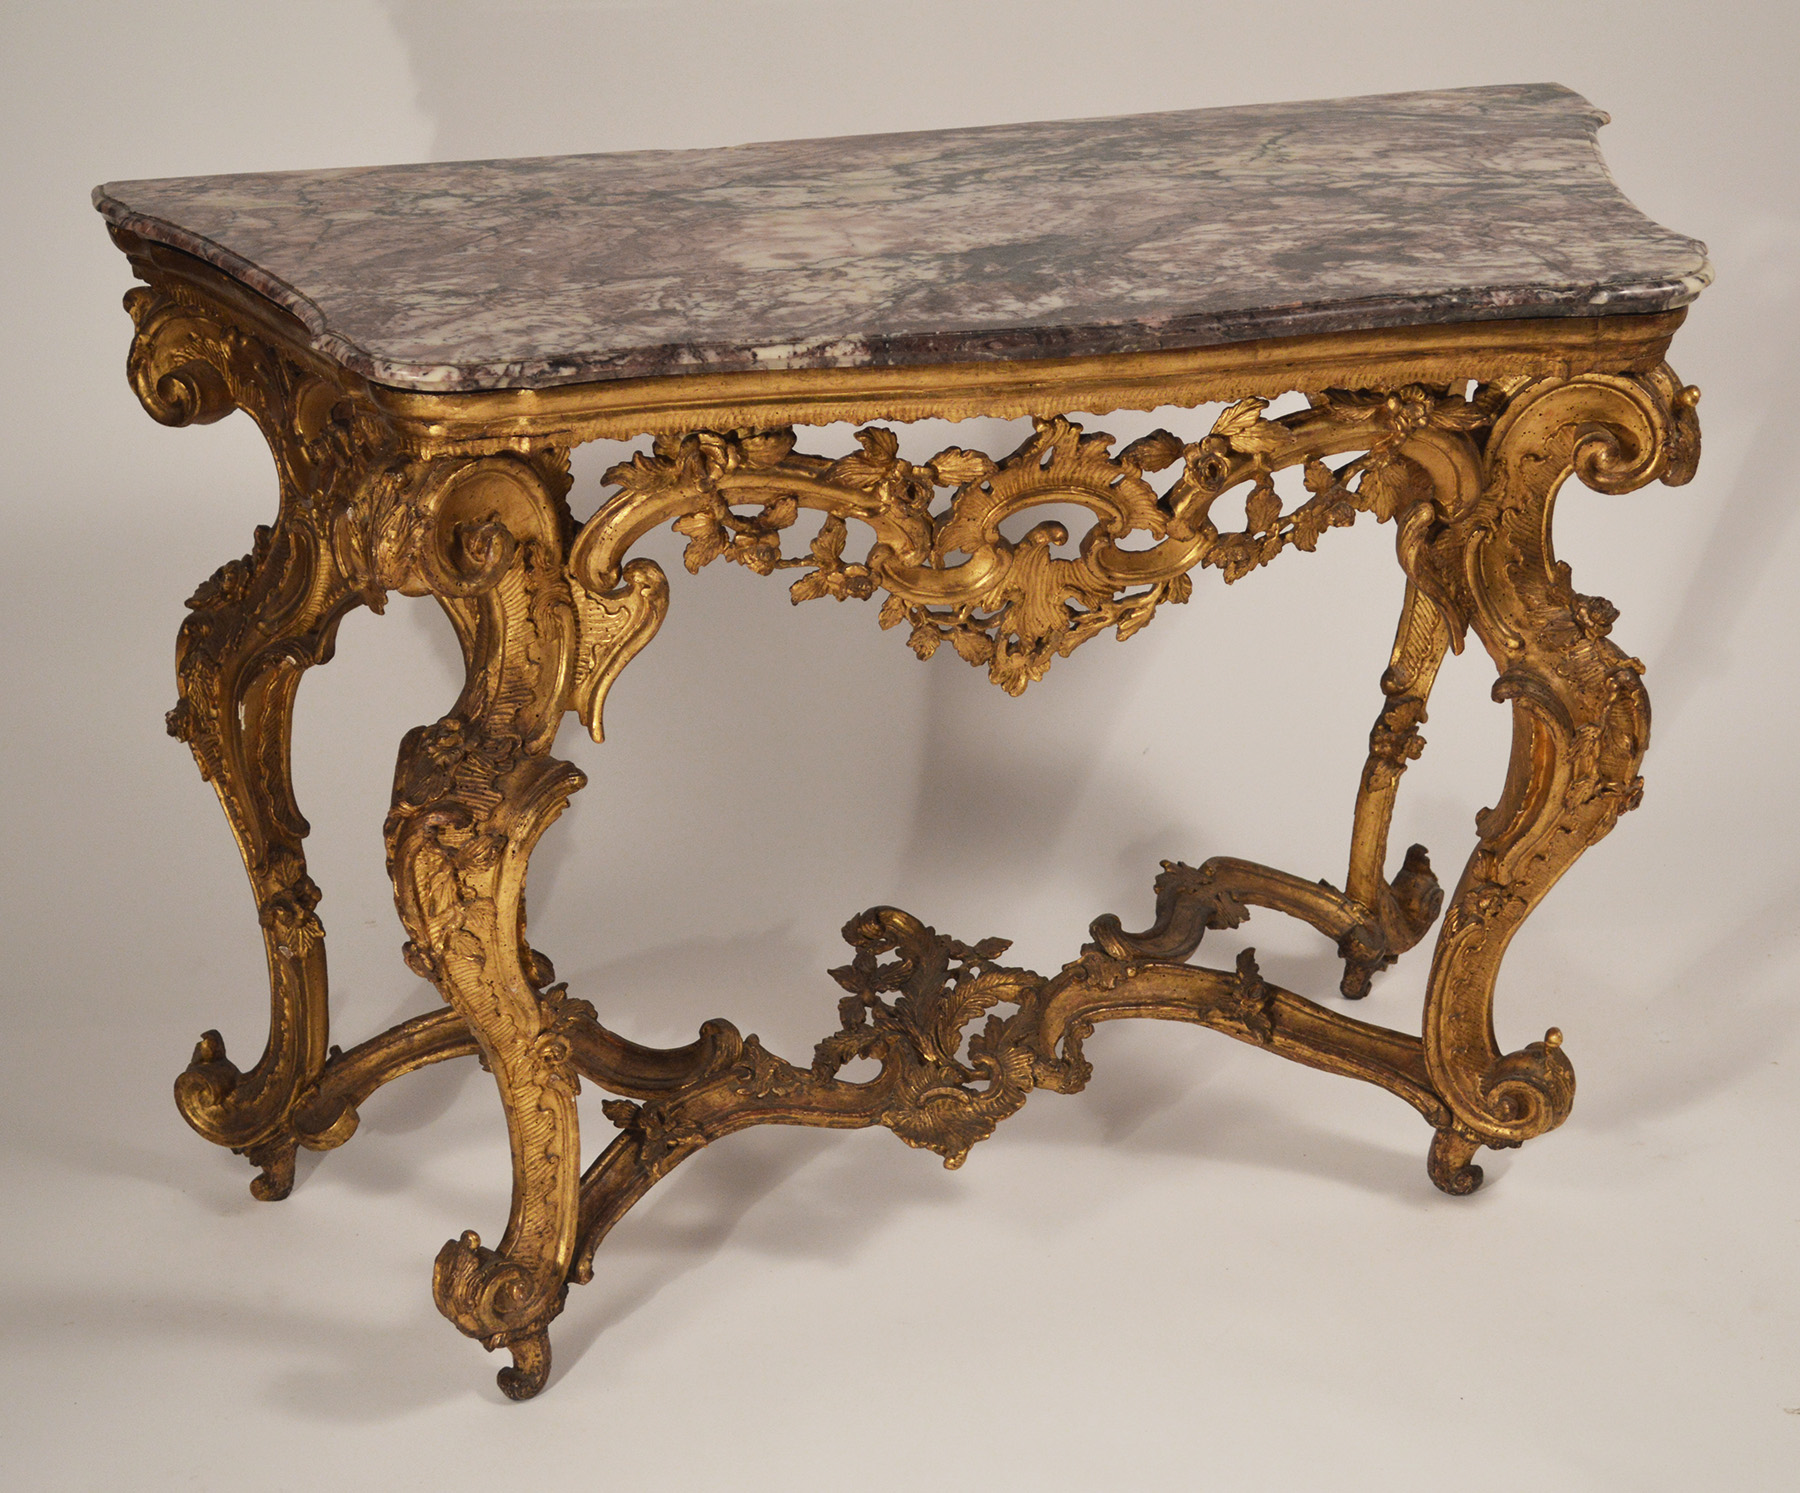 Very Fine Genoese Rococo Period Console Table